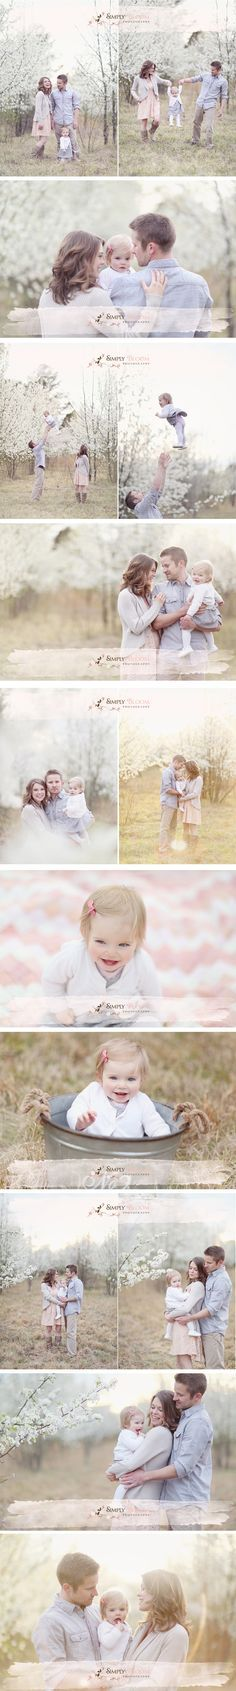 huntsville alabama family photos, huntsville alabama family photographers, huntsville alabama family portraits, ,